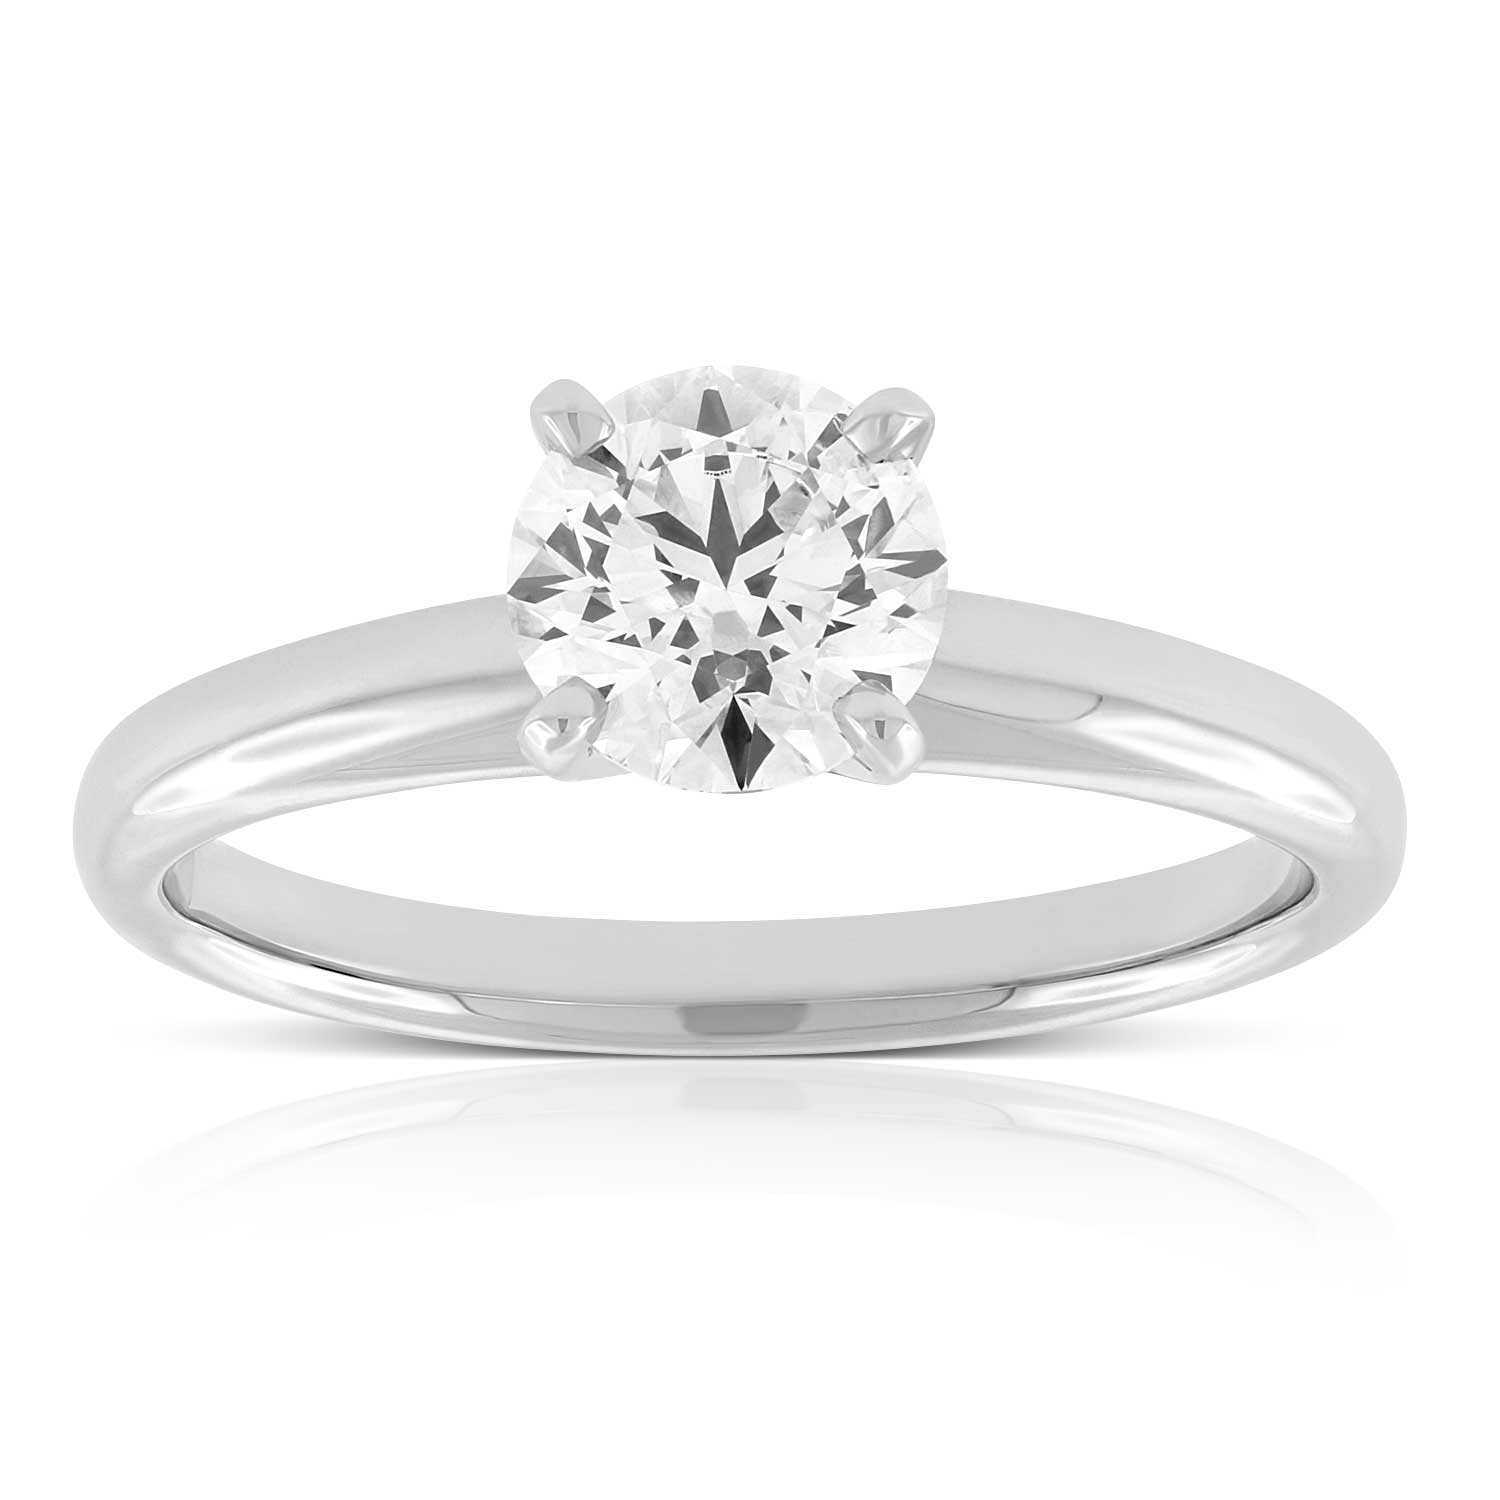 Ikuma Canadian Diamond Solitaire Ring 14k 1 Ct Ben Bridge Jeweler